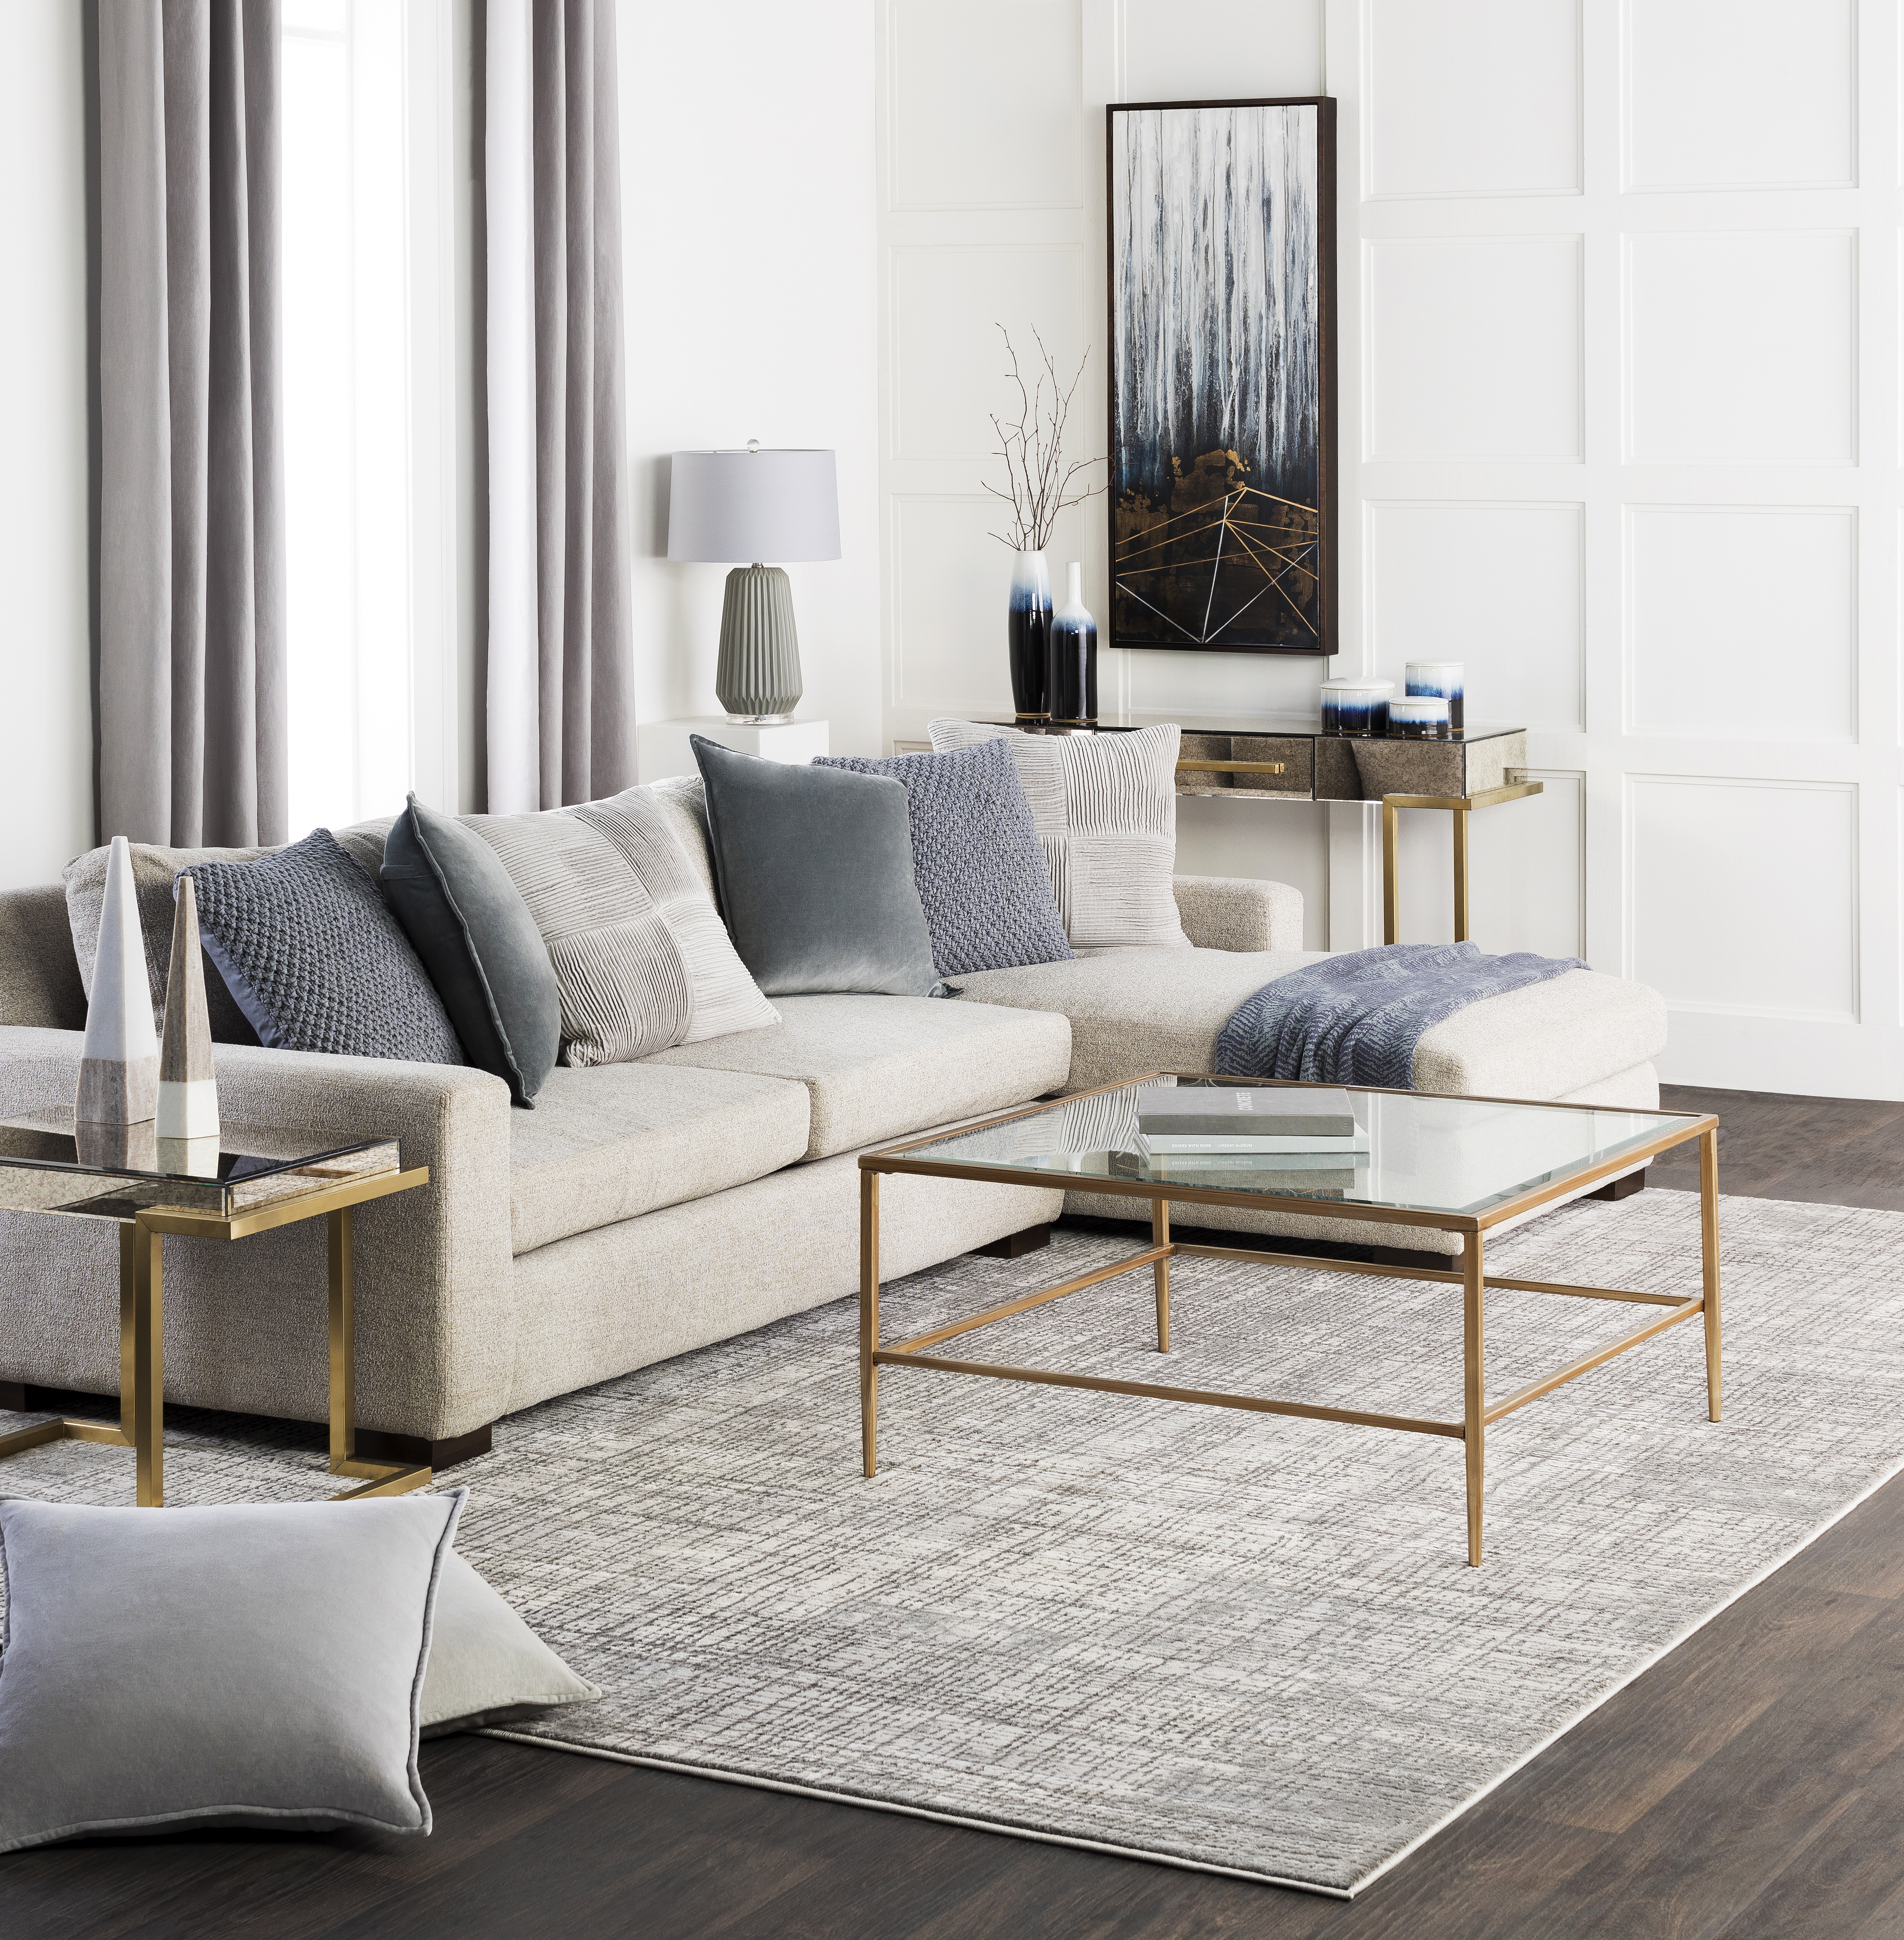 Image of: Type Of Area Rugs Furnitureland South